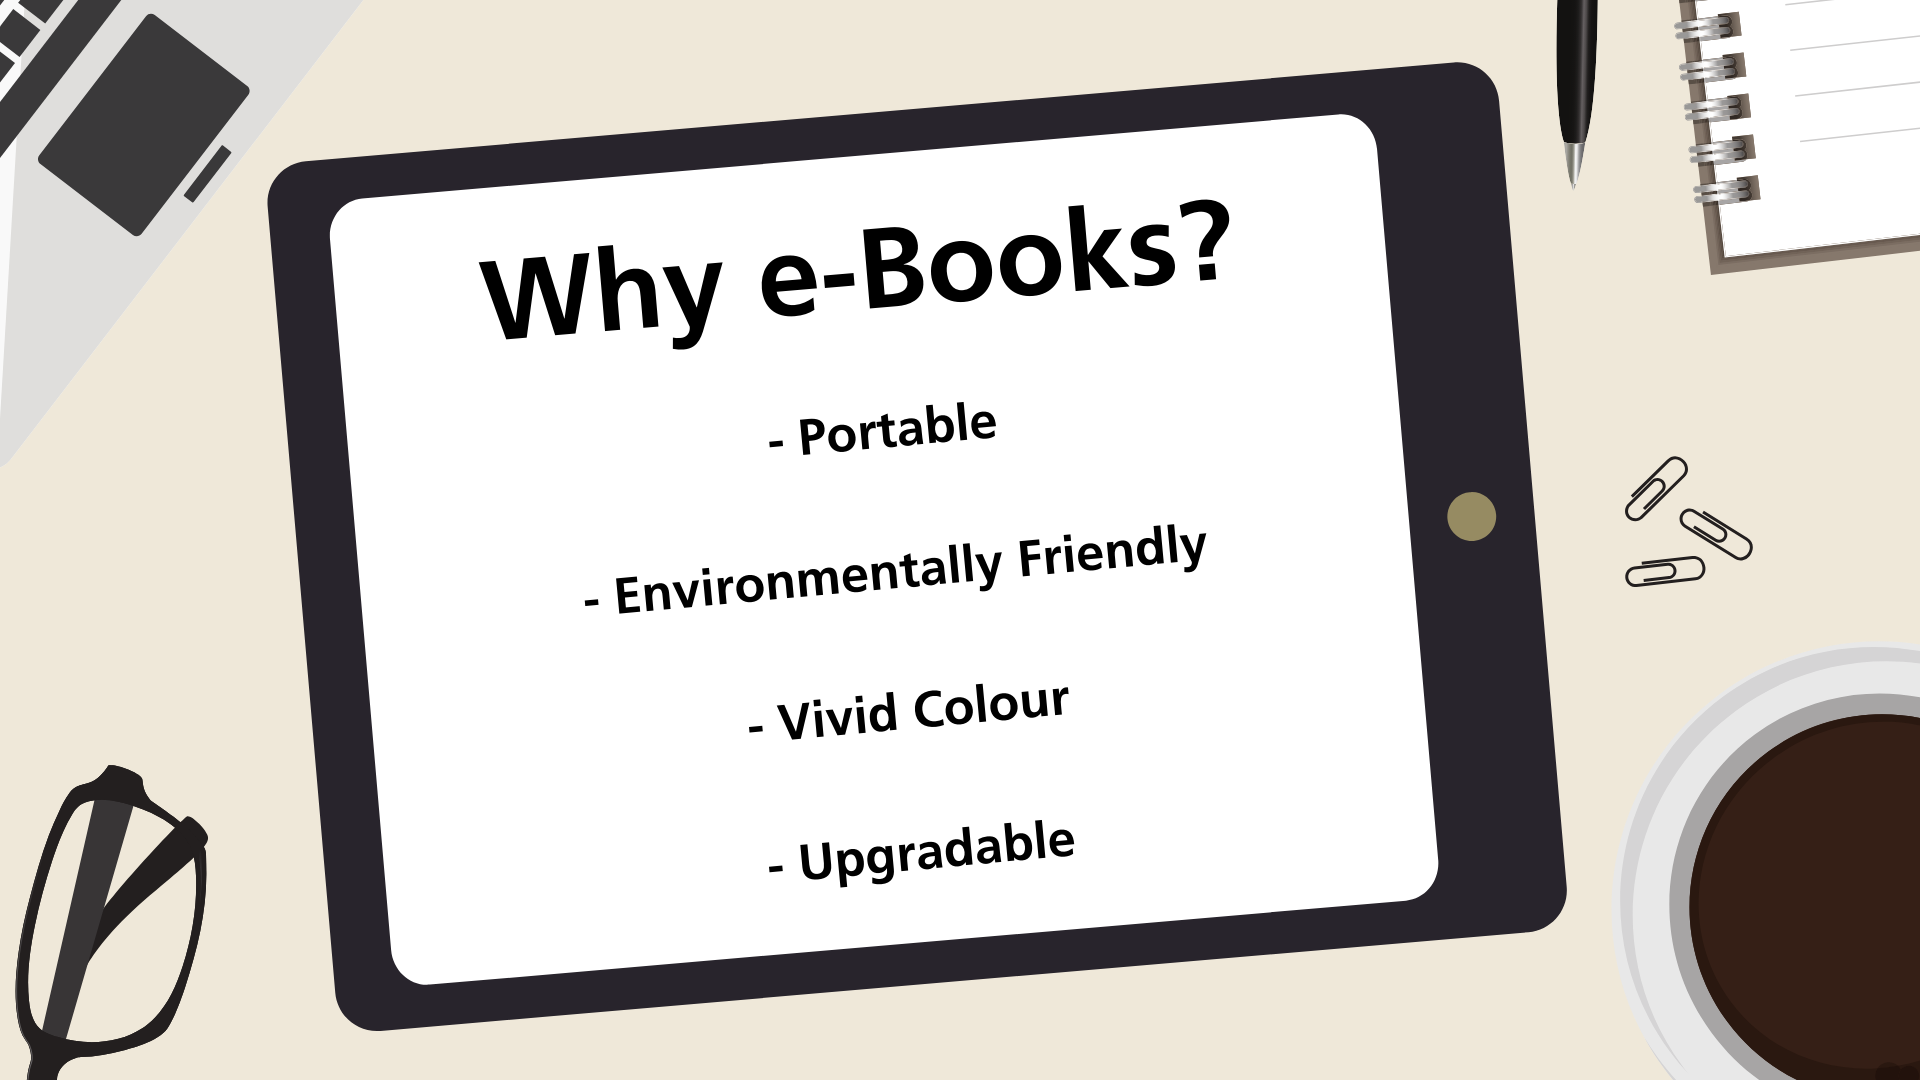 An iPad is placed on a table top and displays the benefits of e-Books, including being portable, environmentally friendly, in vivid colour and upgradable.